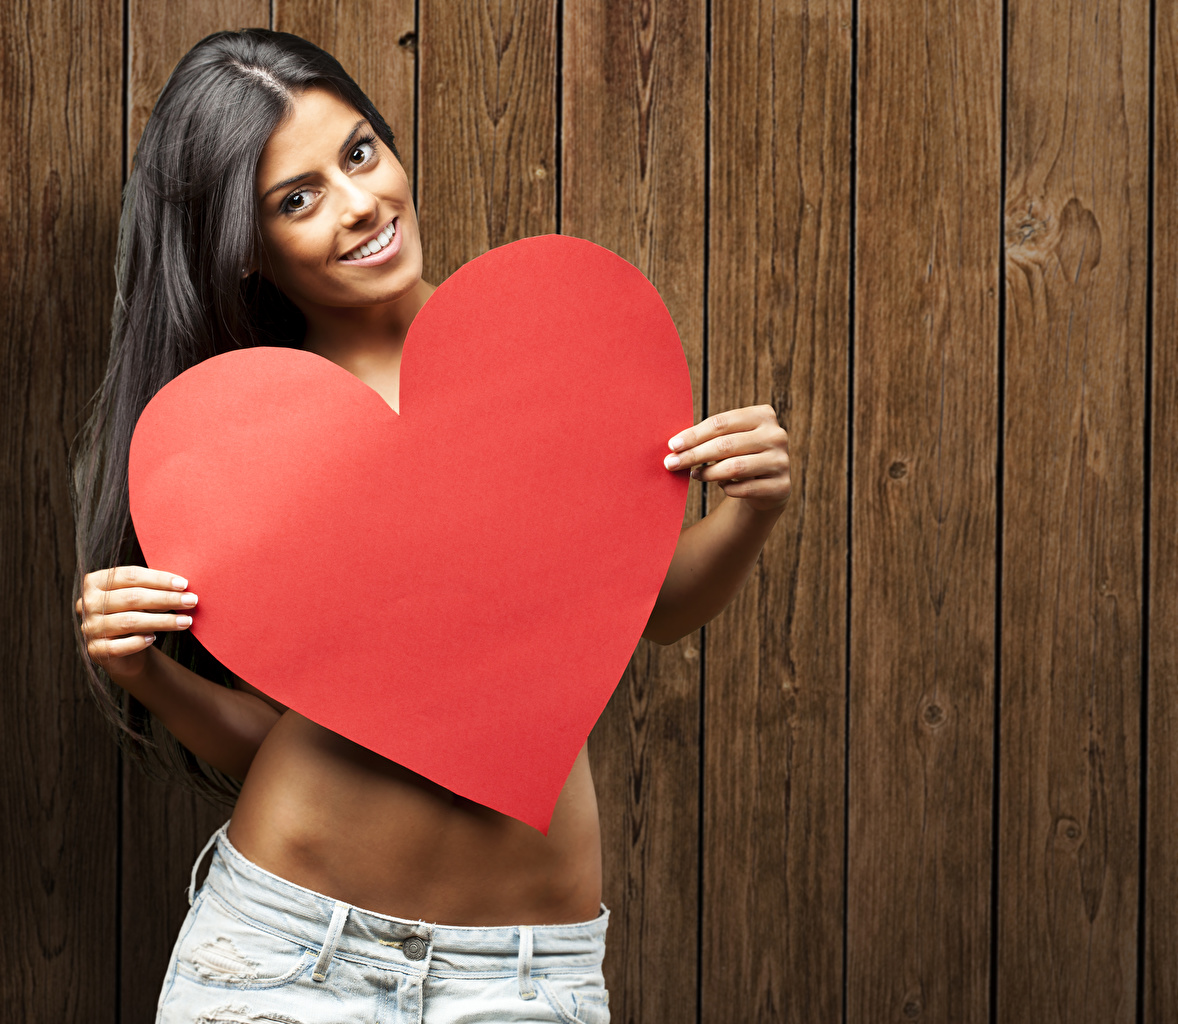 Picture Valentine's Day Brunette girl Smile Heart Girls Wood planks female young woman boards